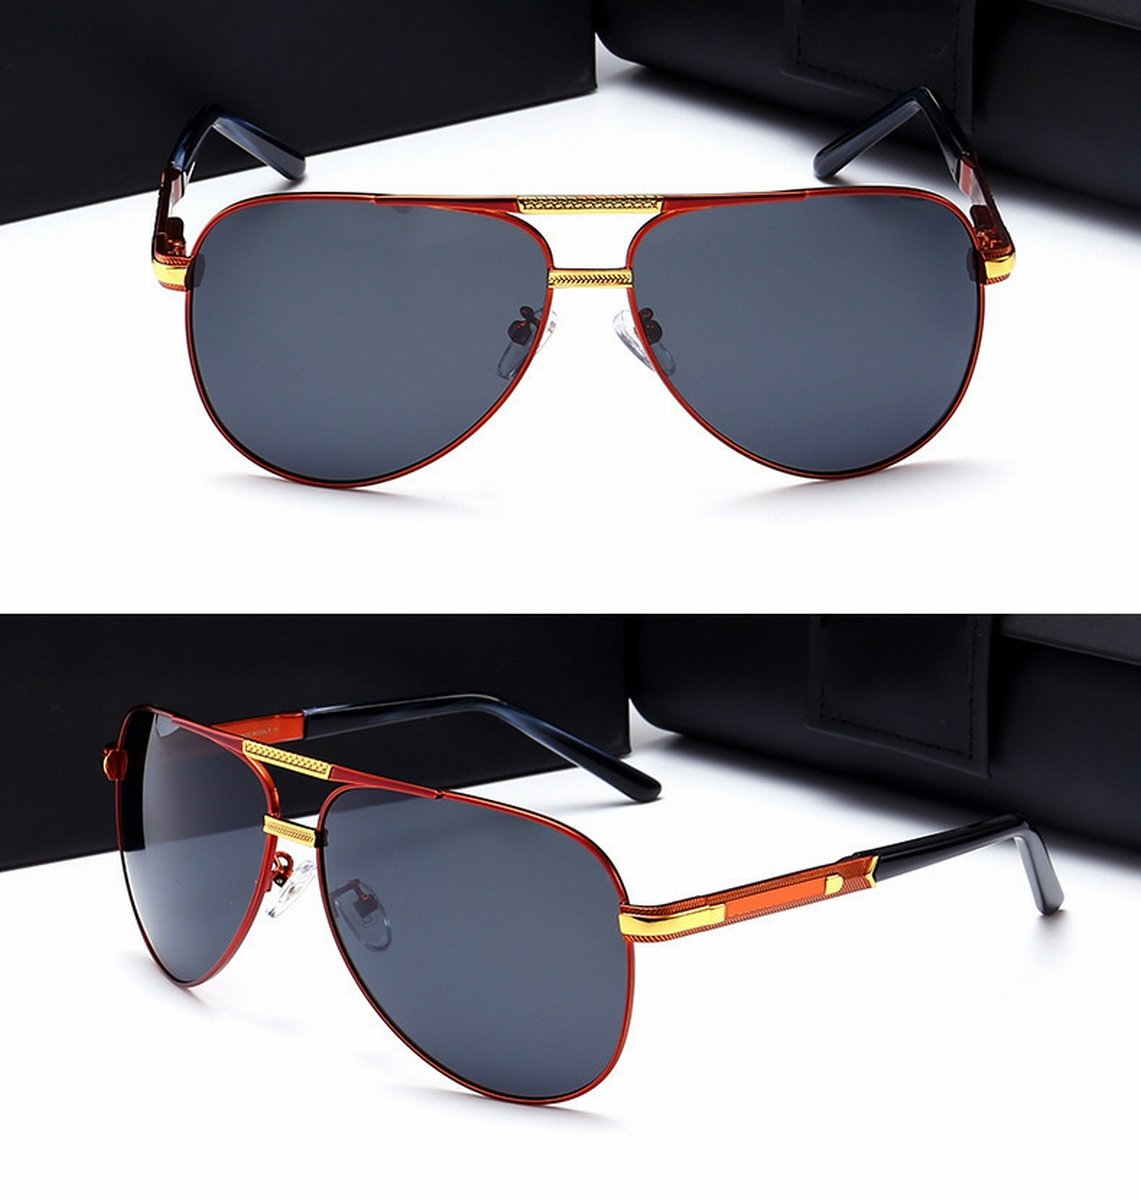 Herren-High-Definition Polarisierte Sonnenbrille Mode Anti ...